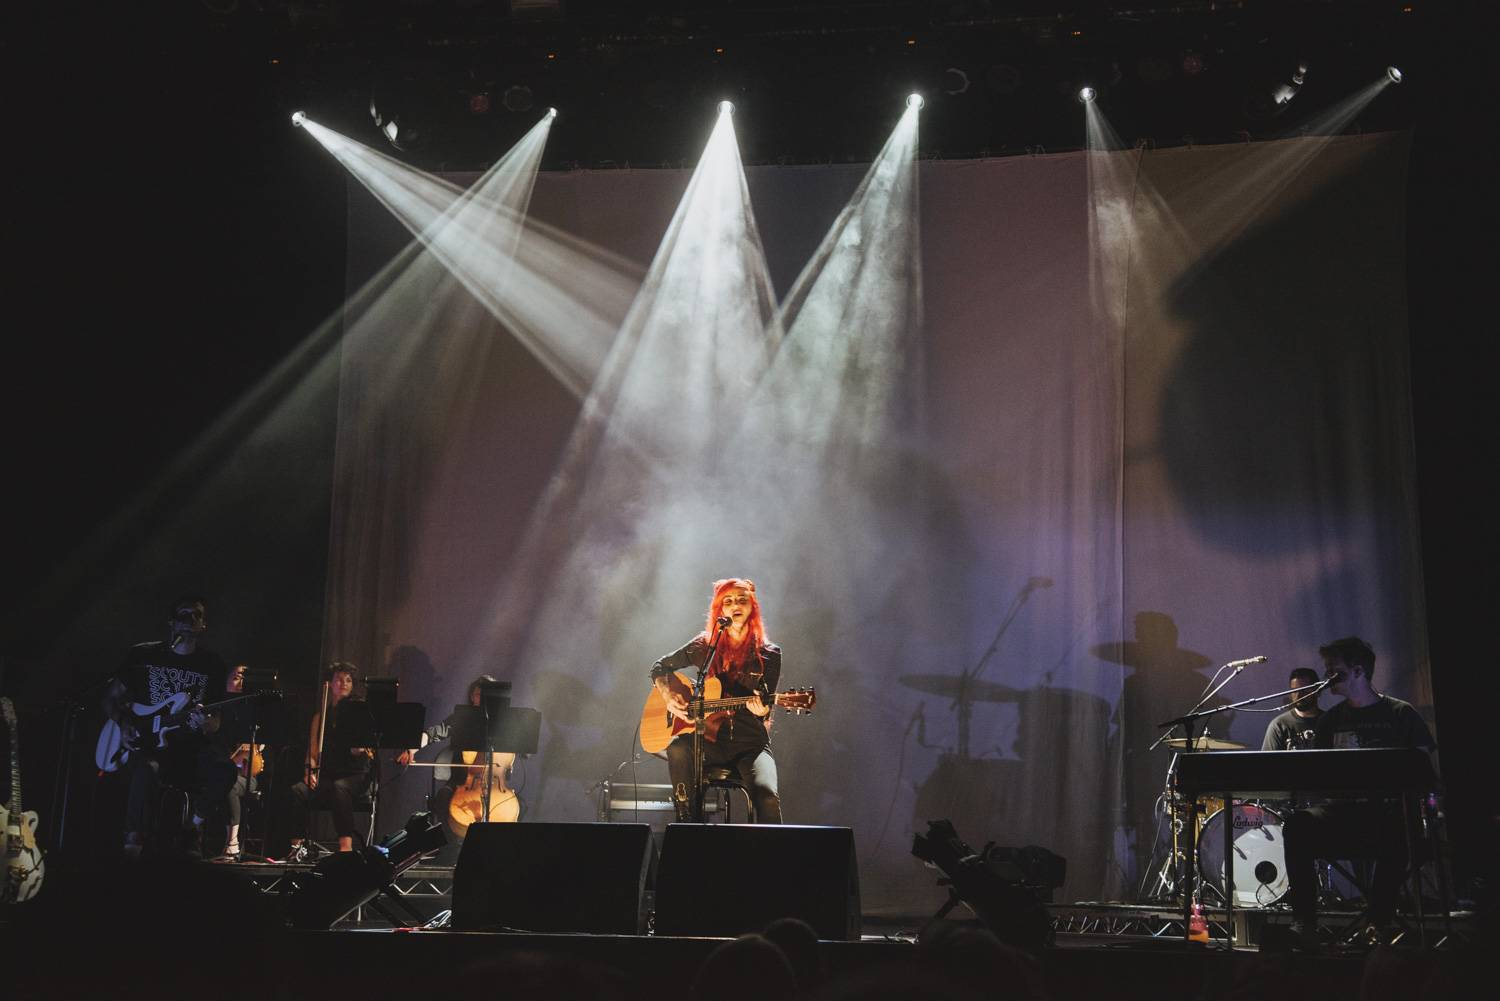 Lights at the Vogue Theatre, Vancouver, Aug 16 2019. Pavel Boiko photo.